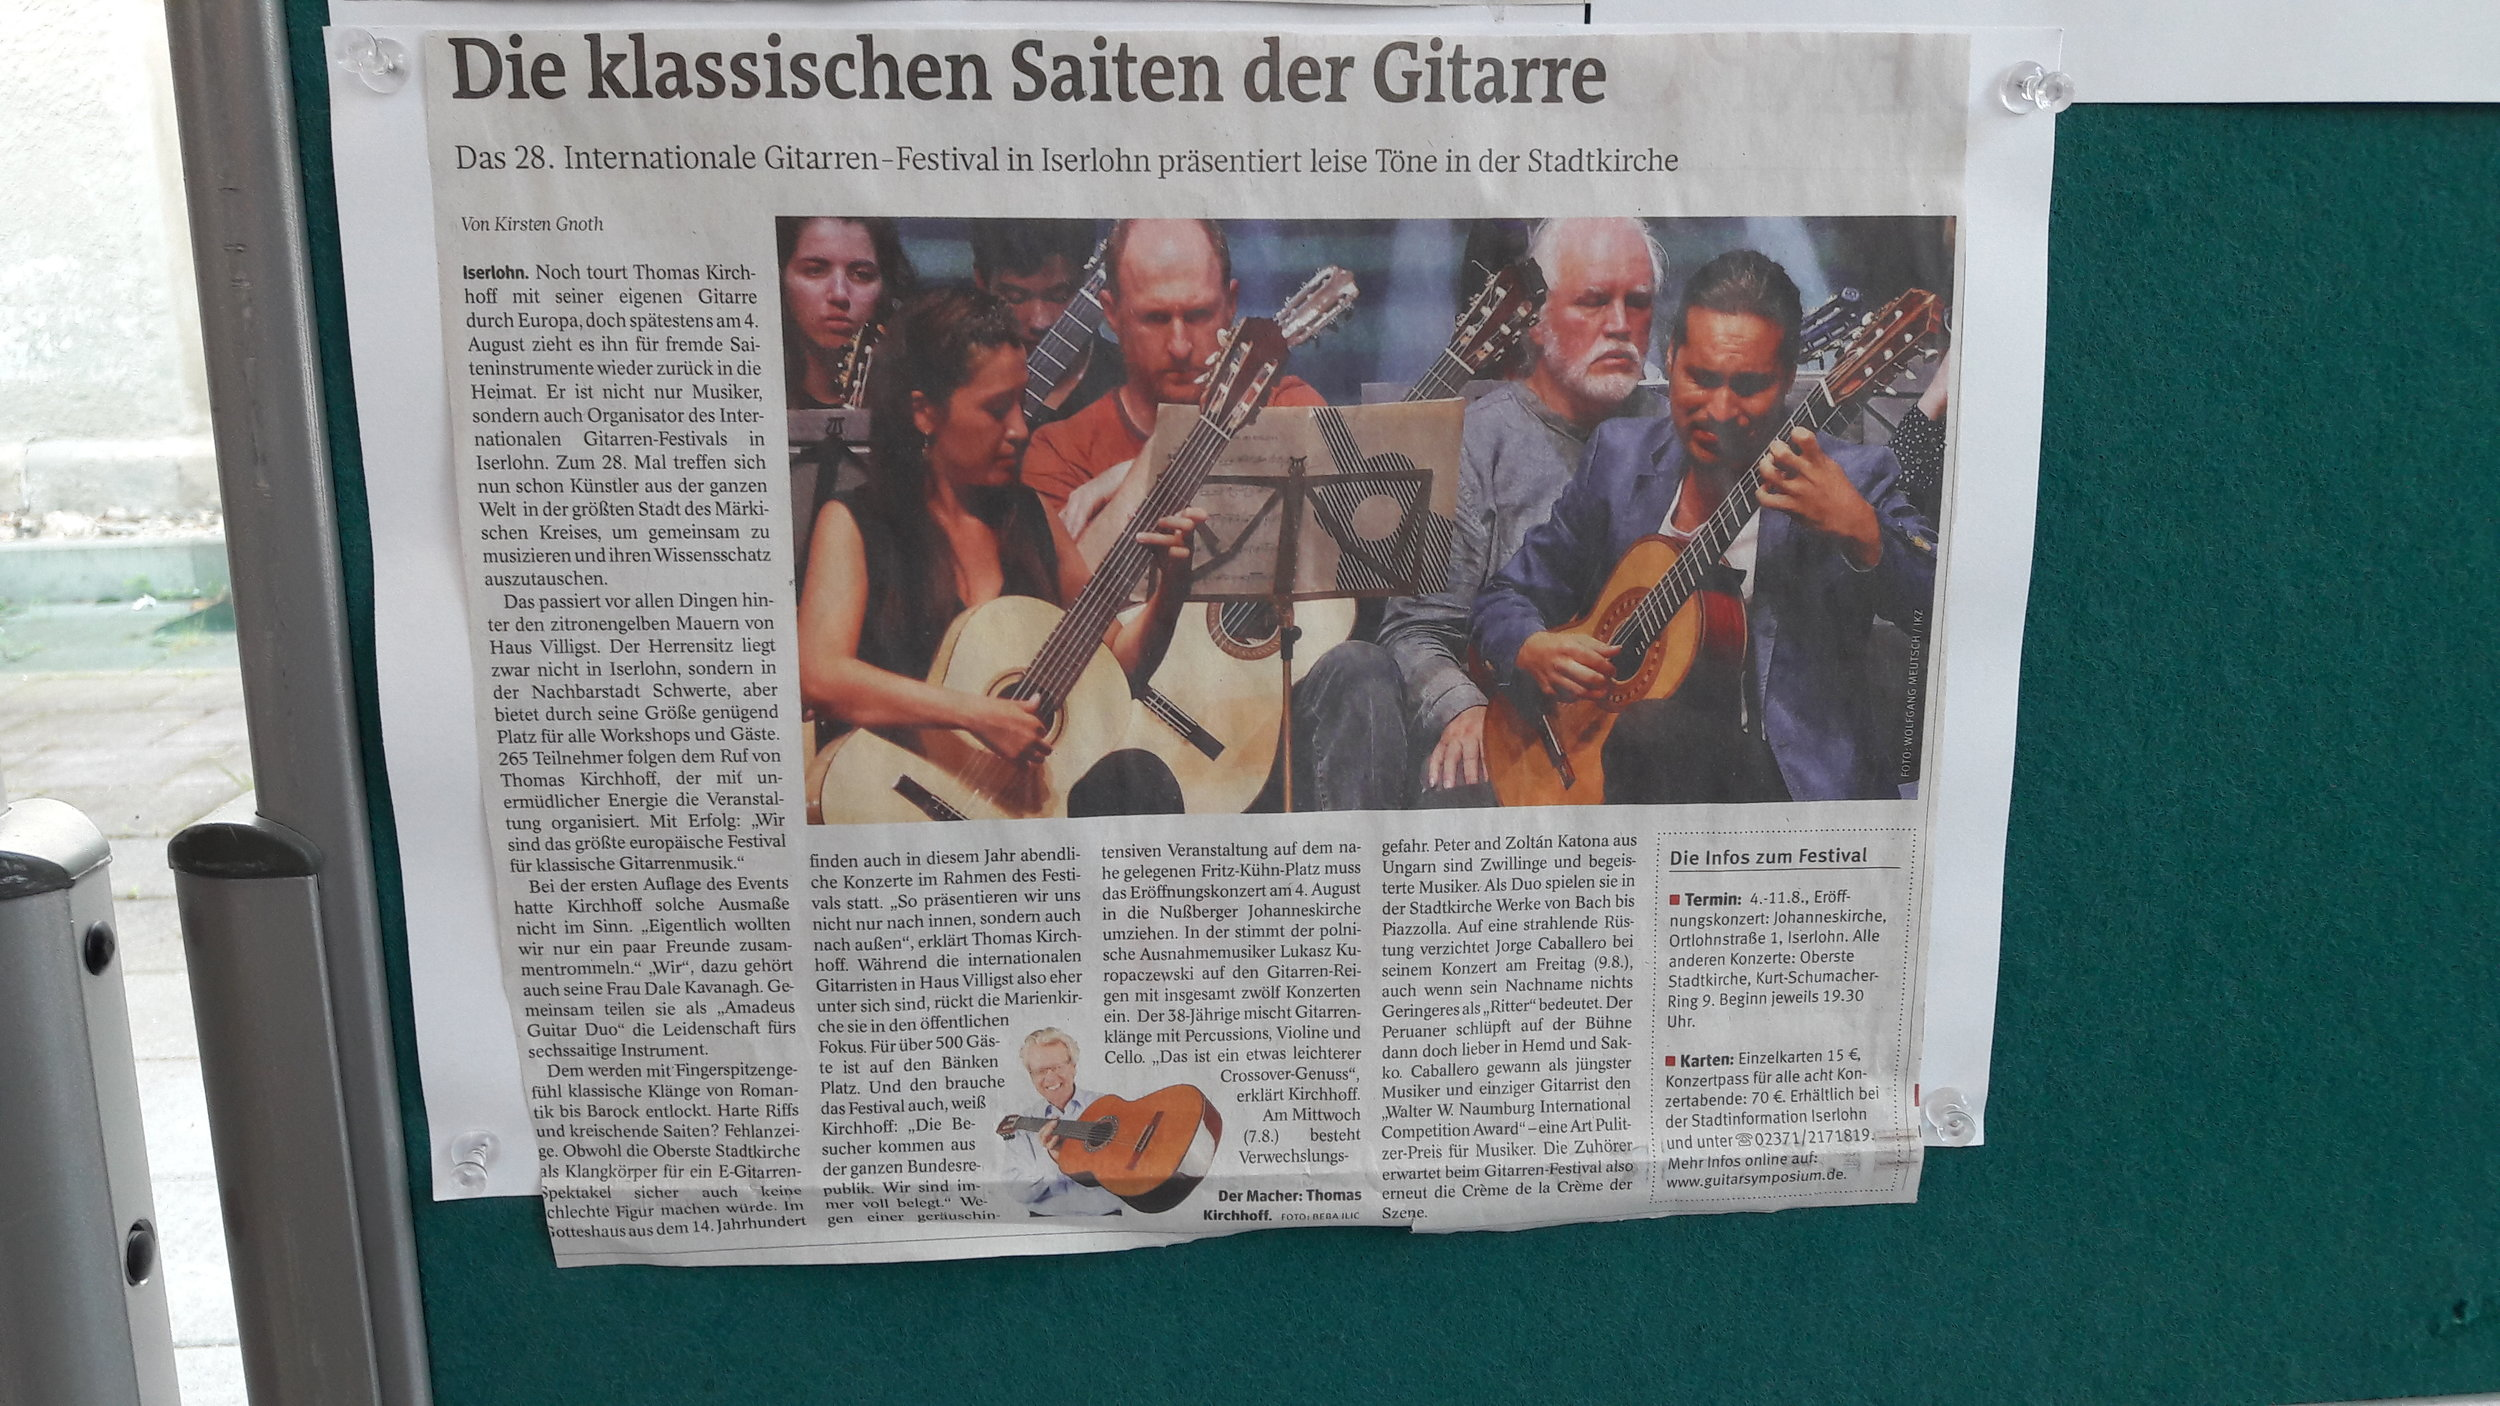 Westfalenpost frontpage newspaper feature with Cruz and Souper duo from Chili playing Den Toom Luthier guitar in Iserlohn guitar festival 2018.